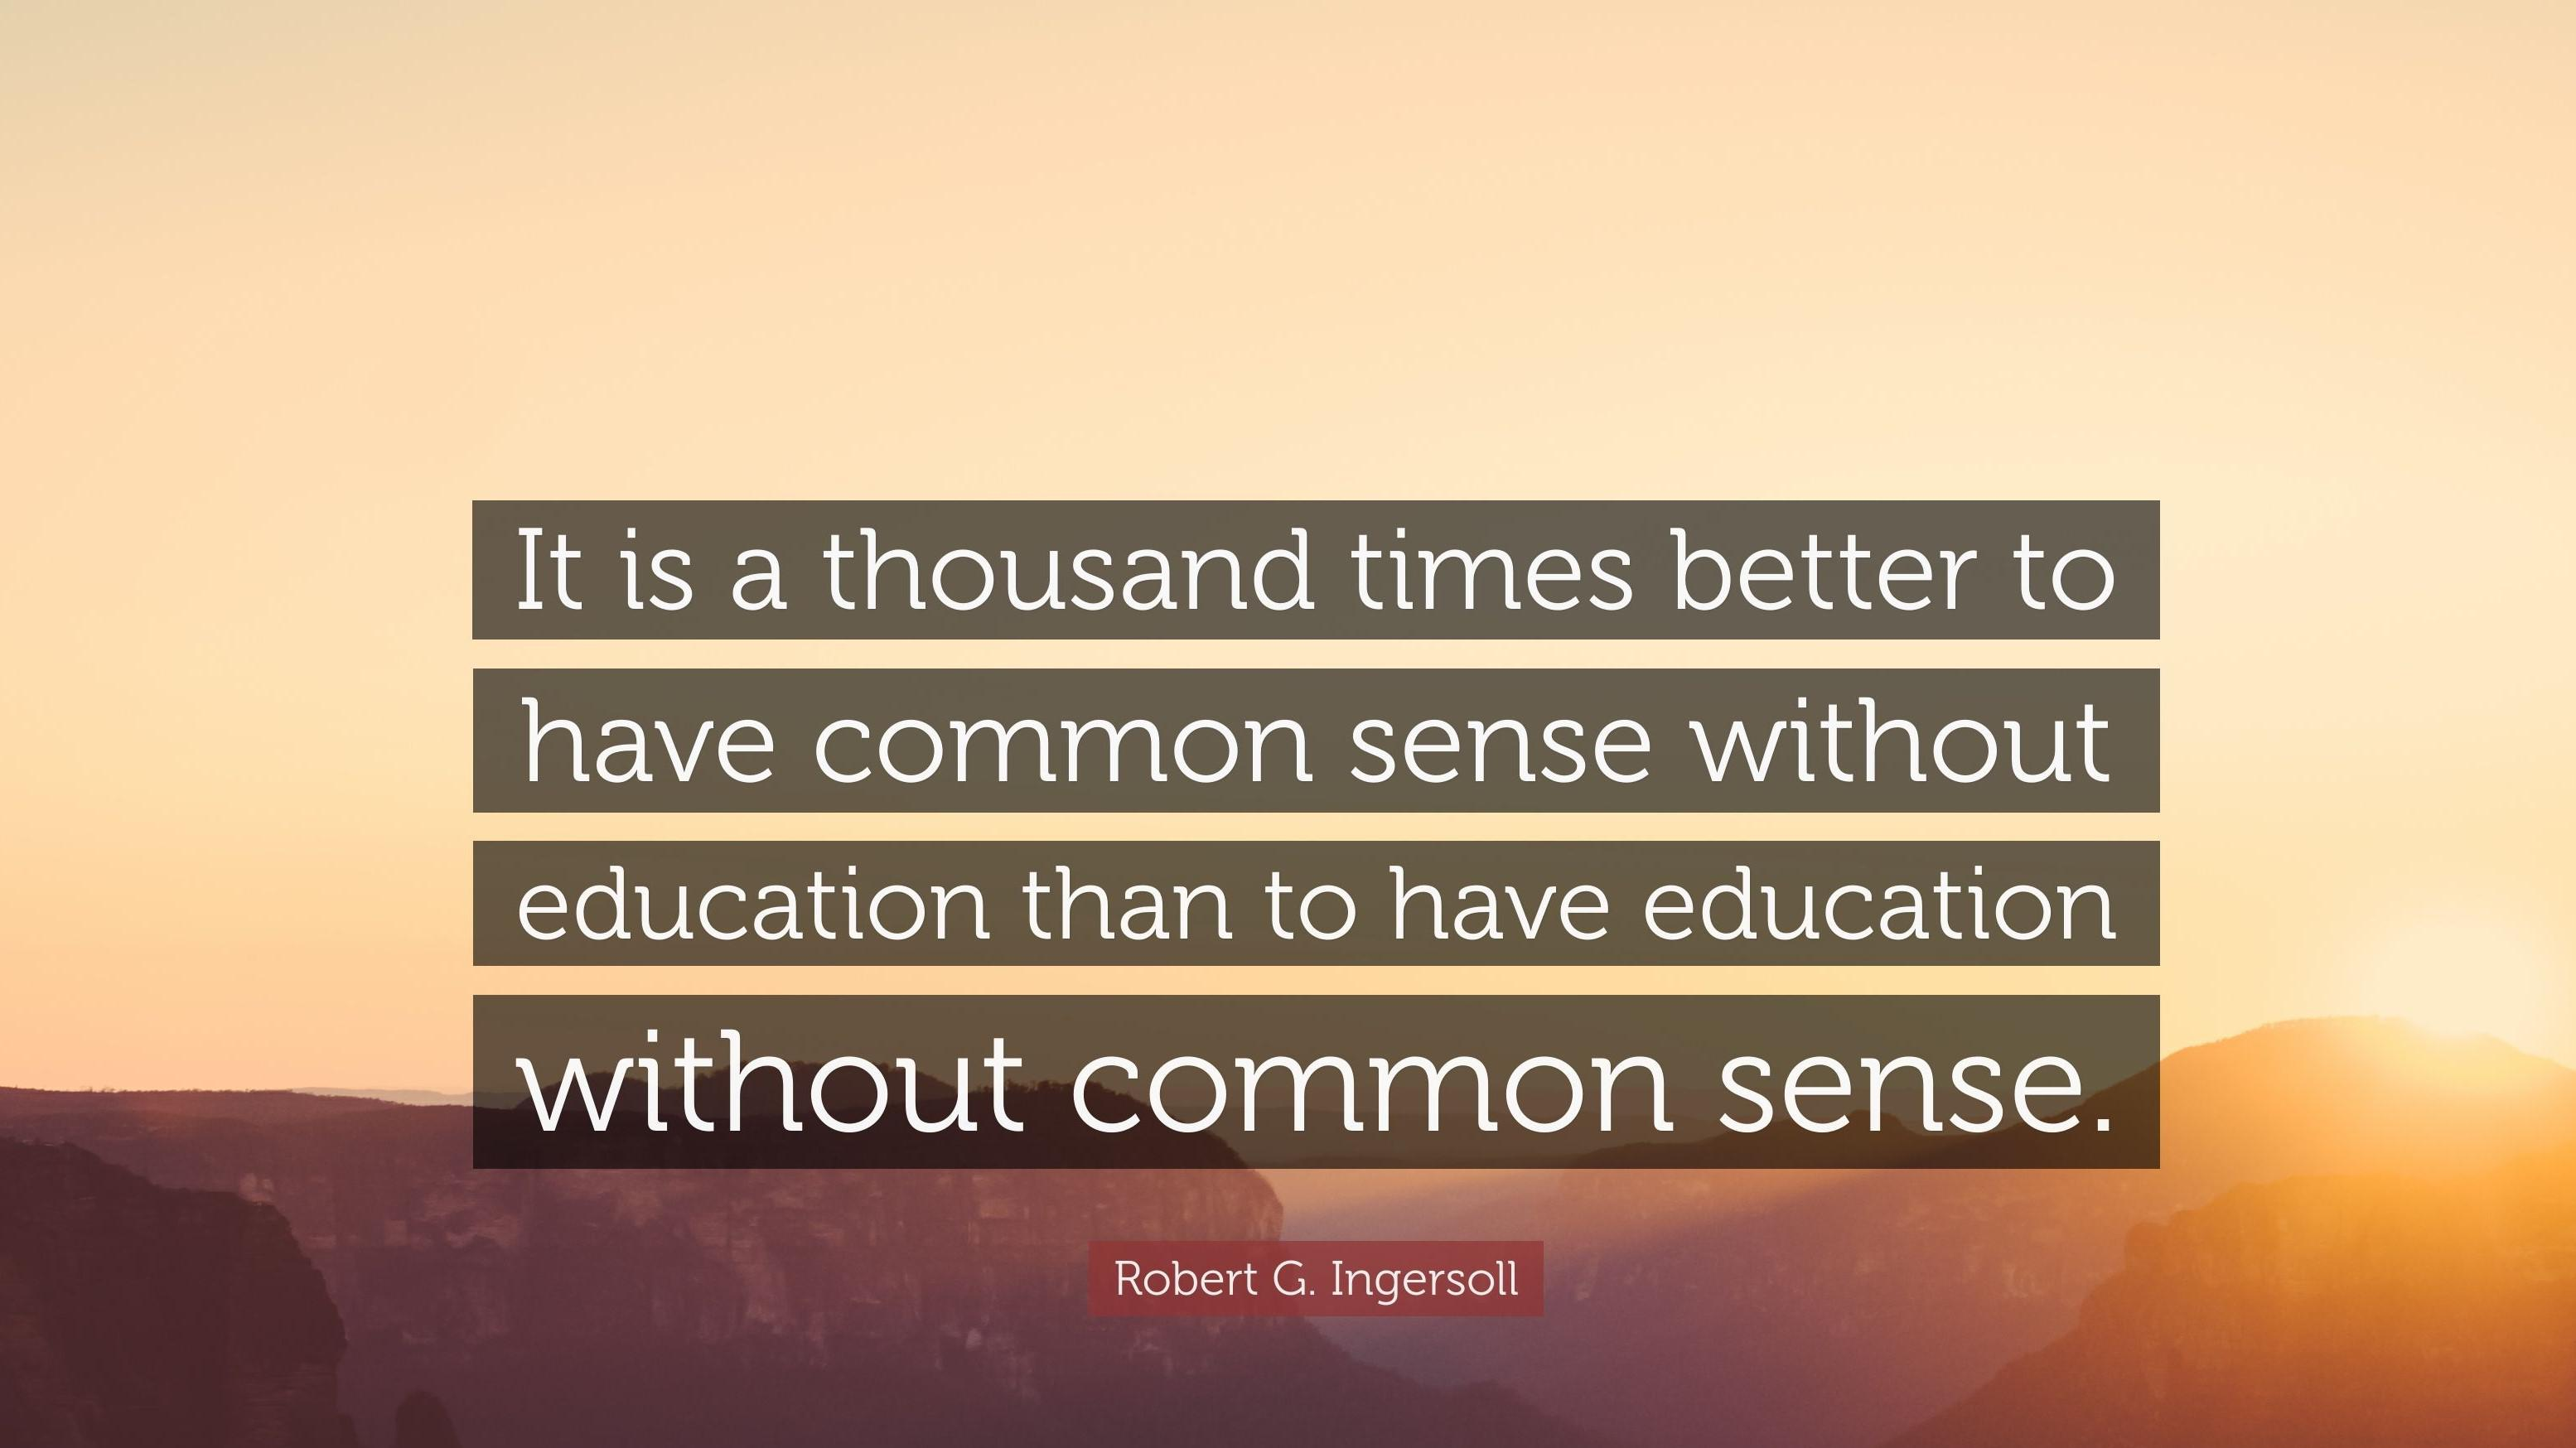 """It is a thousand times better to have common sense without education than to have education without common sense."" -Robert G. Ingersoll [3109 x 1748]"